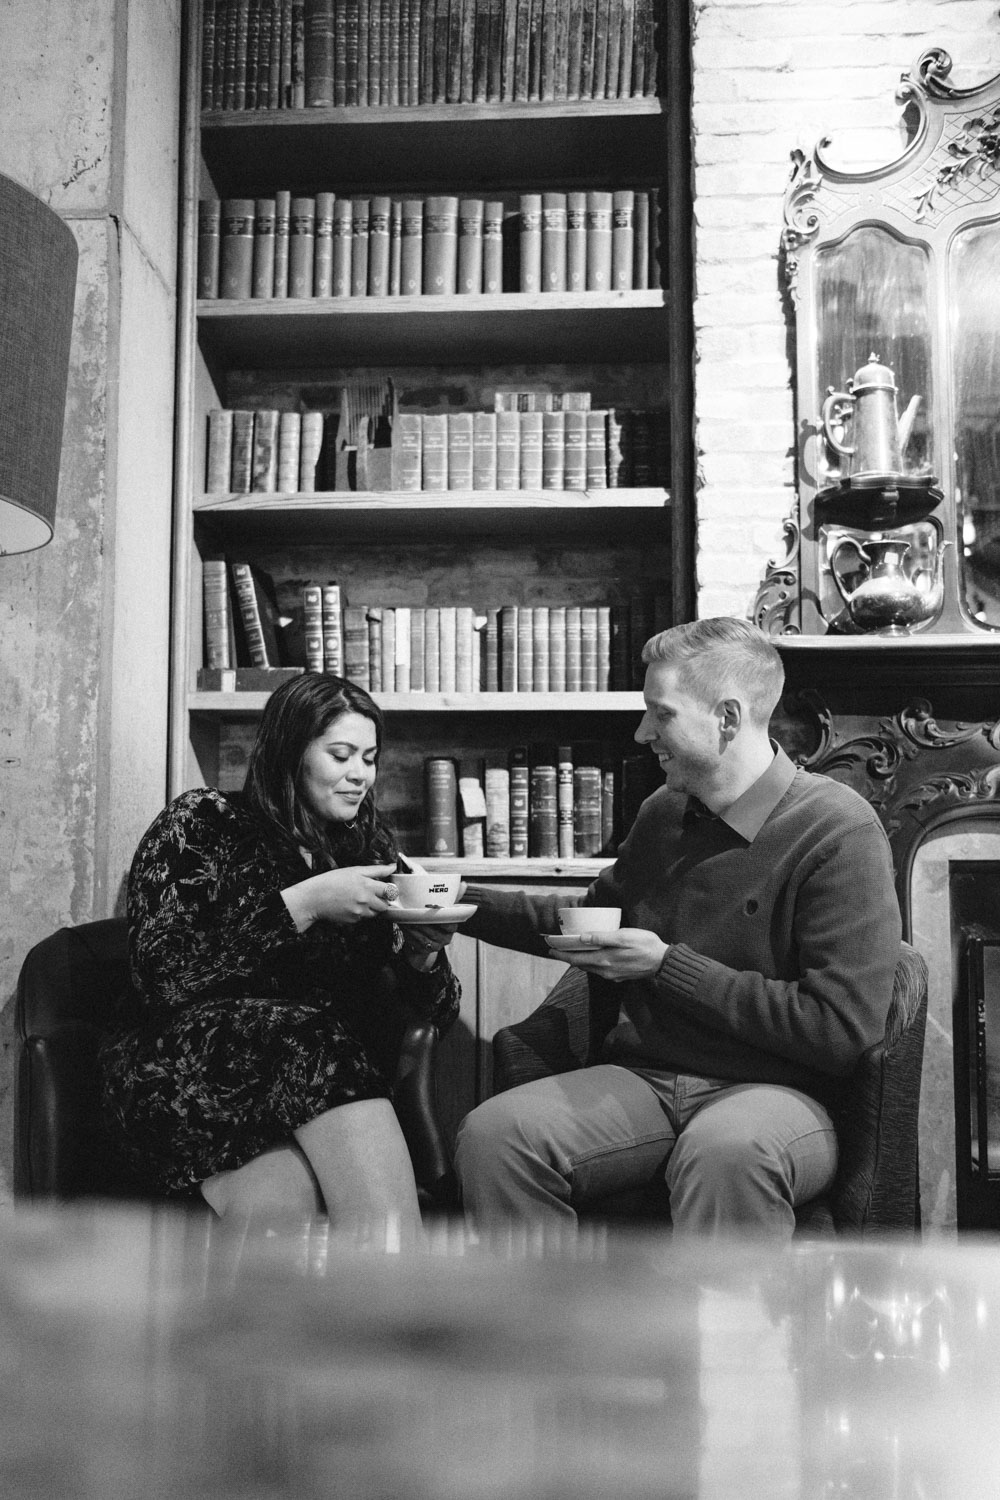 Andrea + Scott | Dog Lovers Cafe Coffee Shop Formal Spring Sunrise Creative Organic Romantic Engagement Session | Boston and New England Engagement Photography Black and White | Lorna Stell Photo